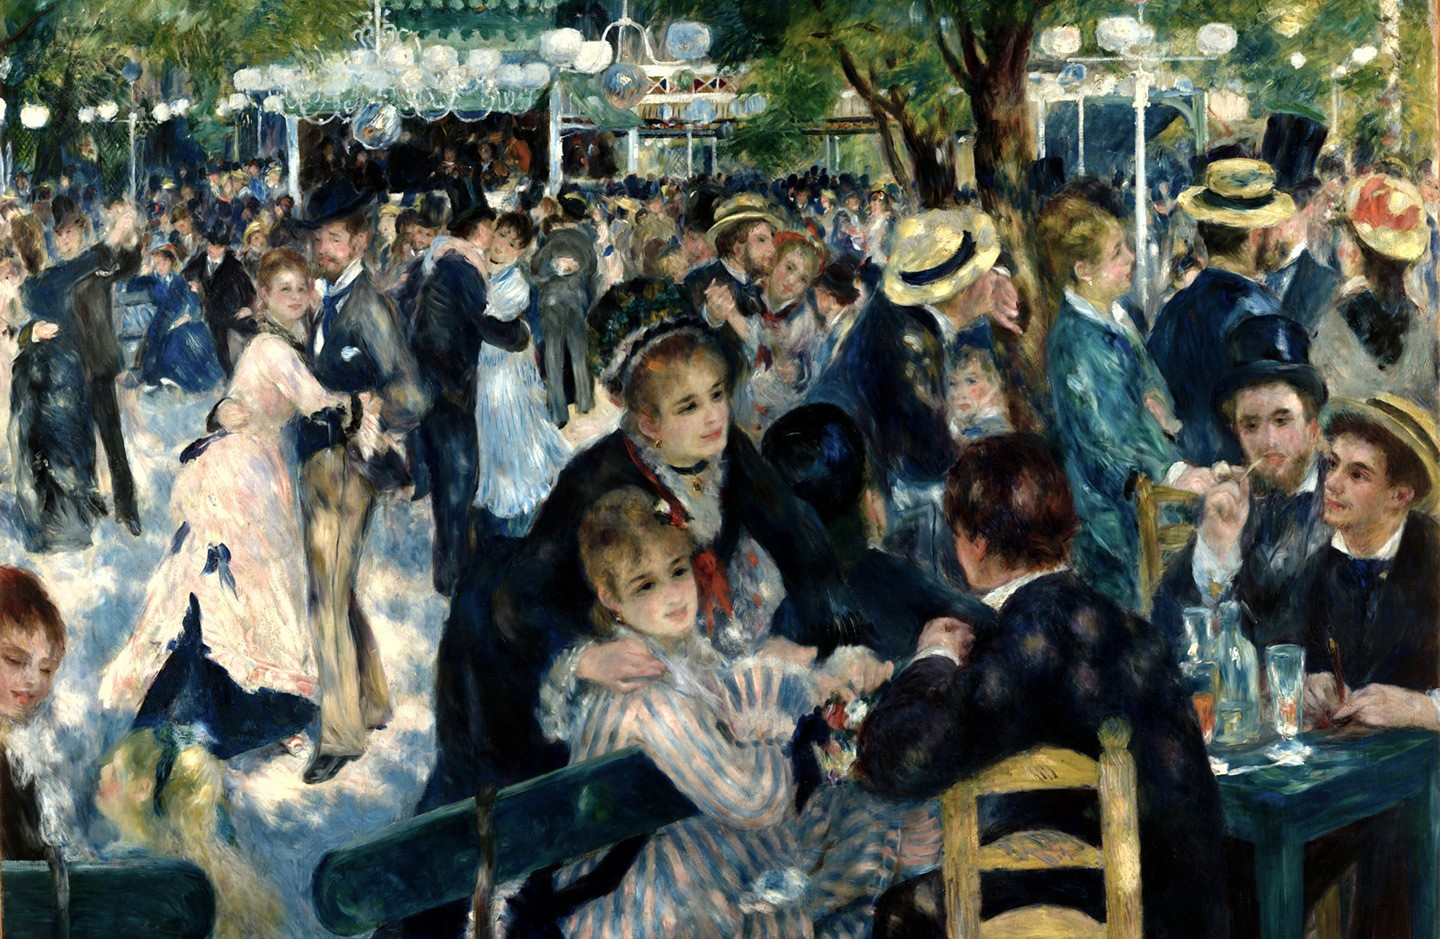 Renoir's painting Dance at Le Moulin de la Galette from the Musee d'Orsay in Paris